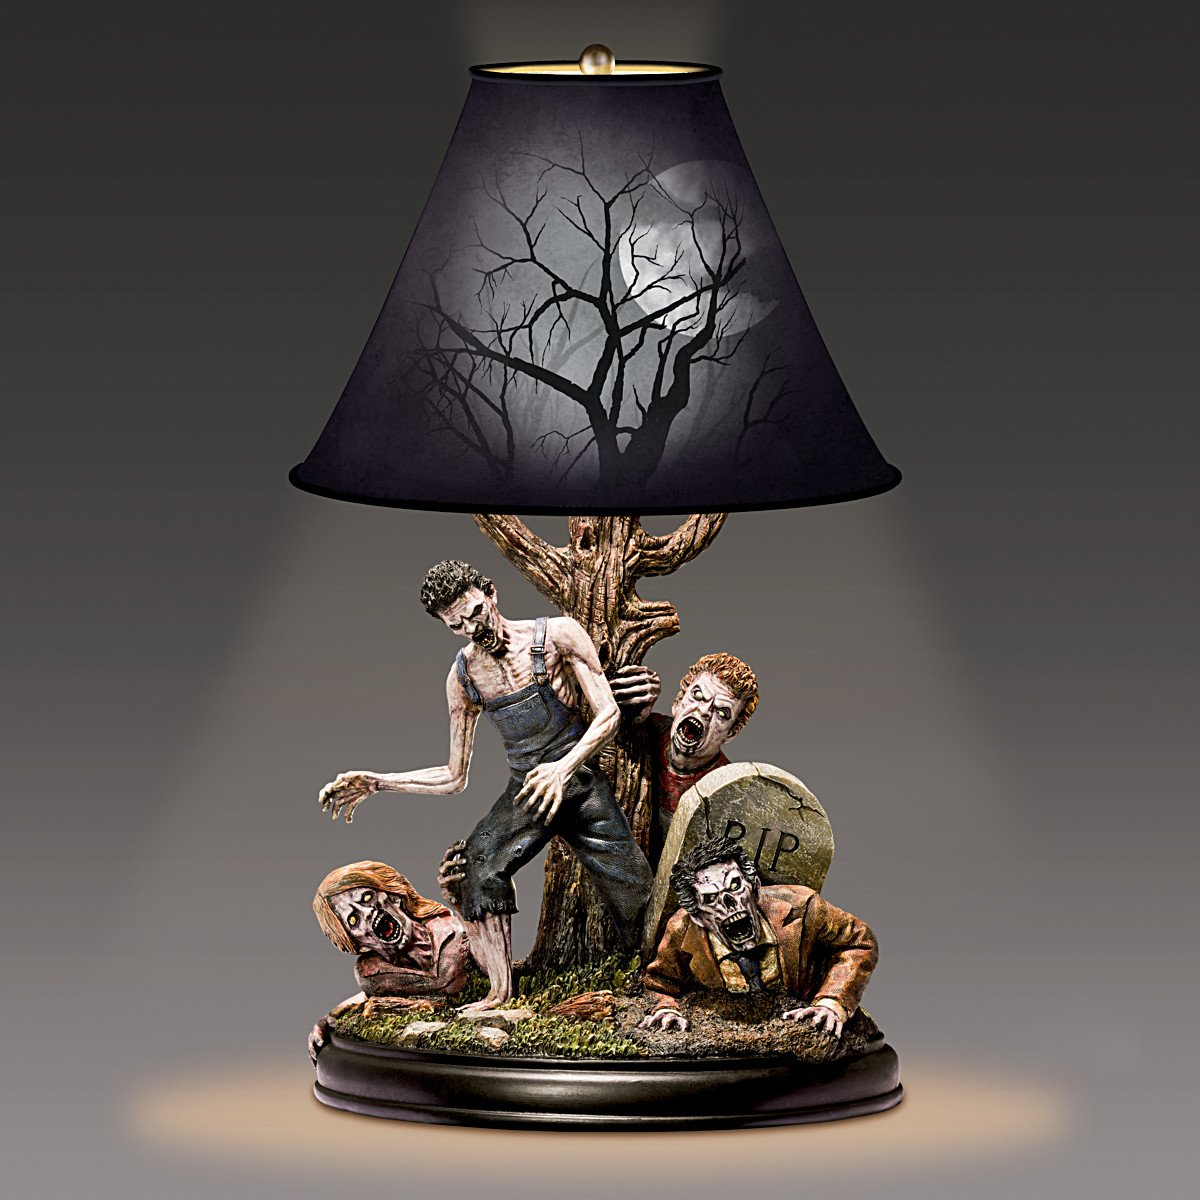 J Anthony Kosar Dead Of Night Sculptural Zombie Tabletop Lamp With Free CFL  Bulb By The Bradford Exchange     Amazon.com